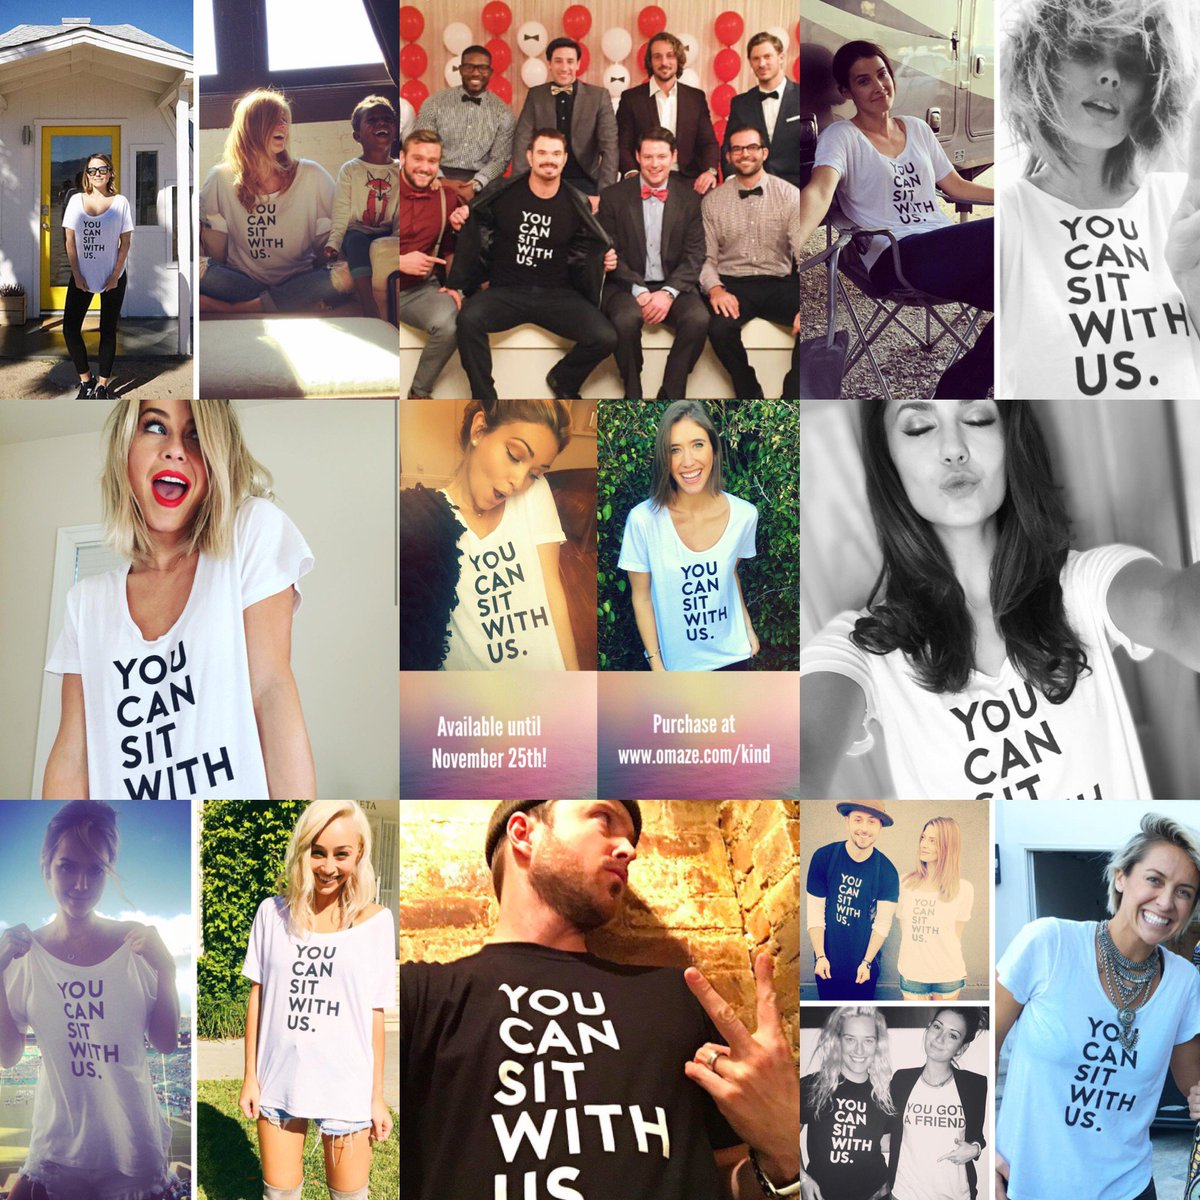 Back by popular demand! 5 more days to get your hands on our YOU CAN SIT WITH US tee here: https://t.co/ti8U2EEtiY! https://t.co/EY3ApEUOUq